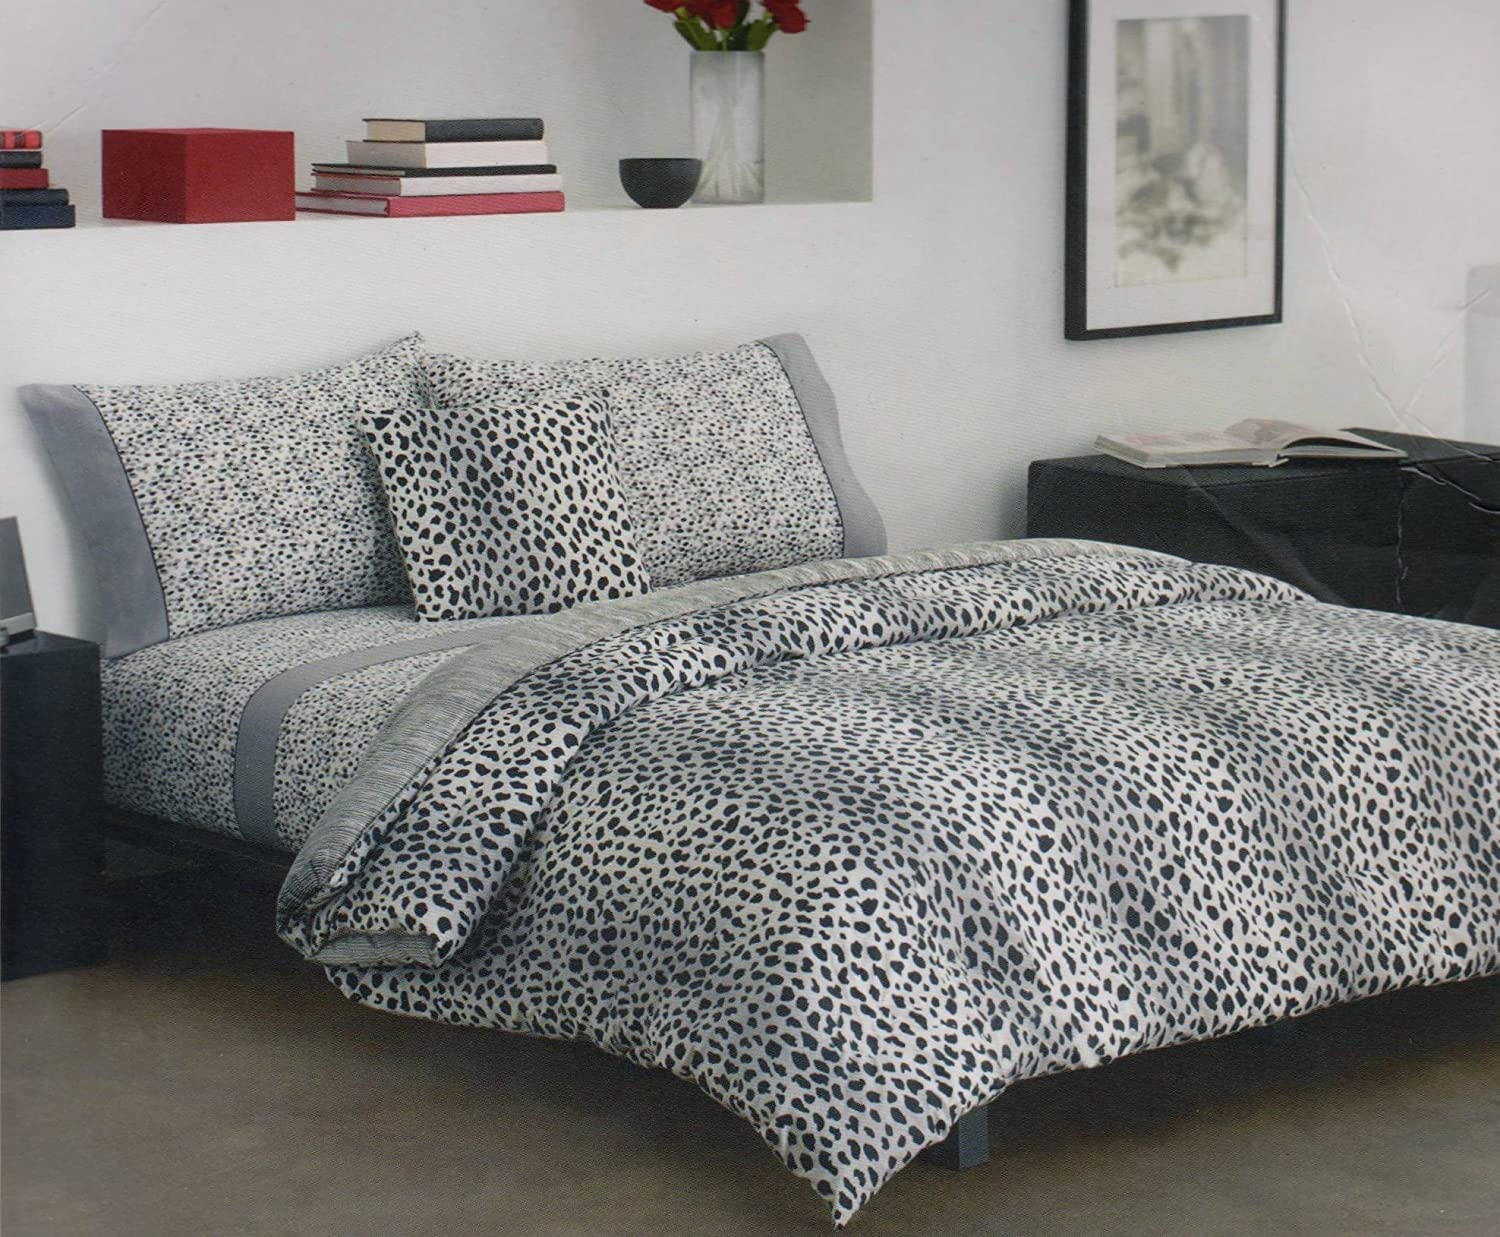 cheetah print bedding totally kids totally bedrooms kids bedroom